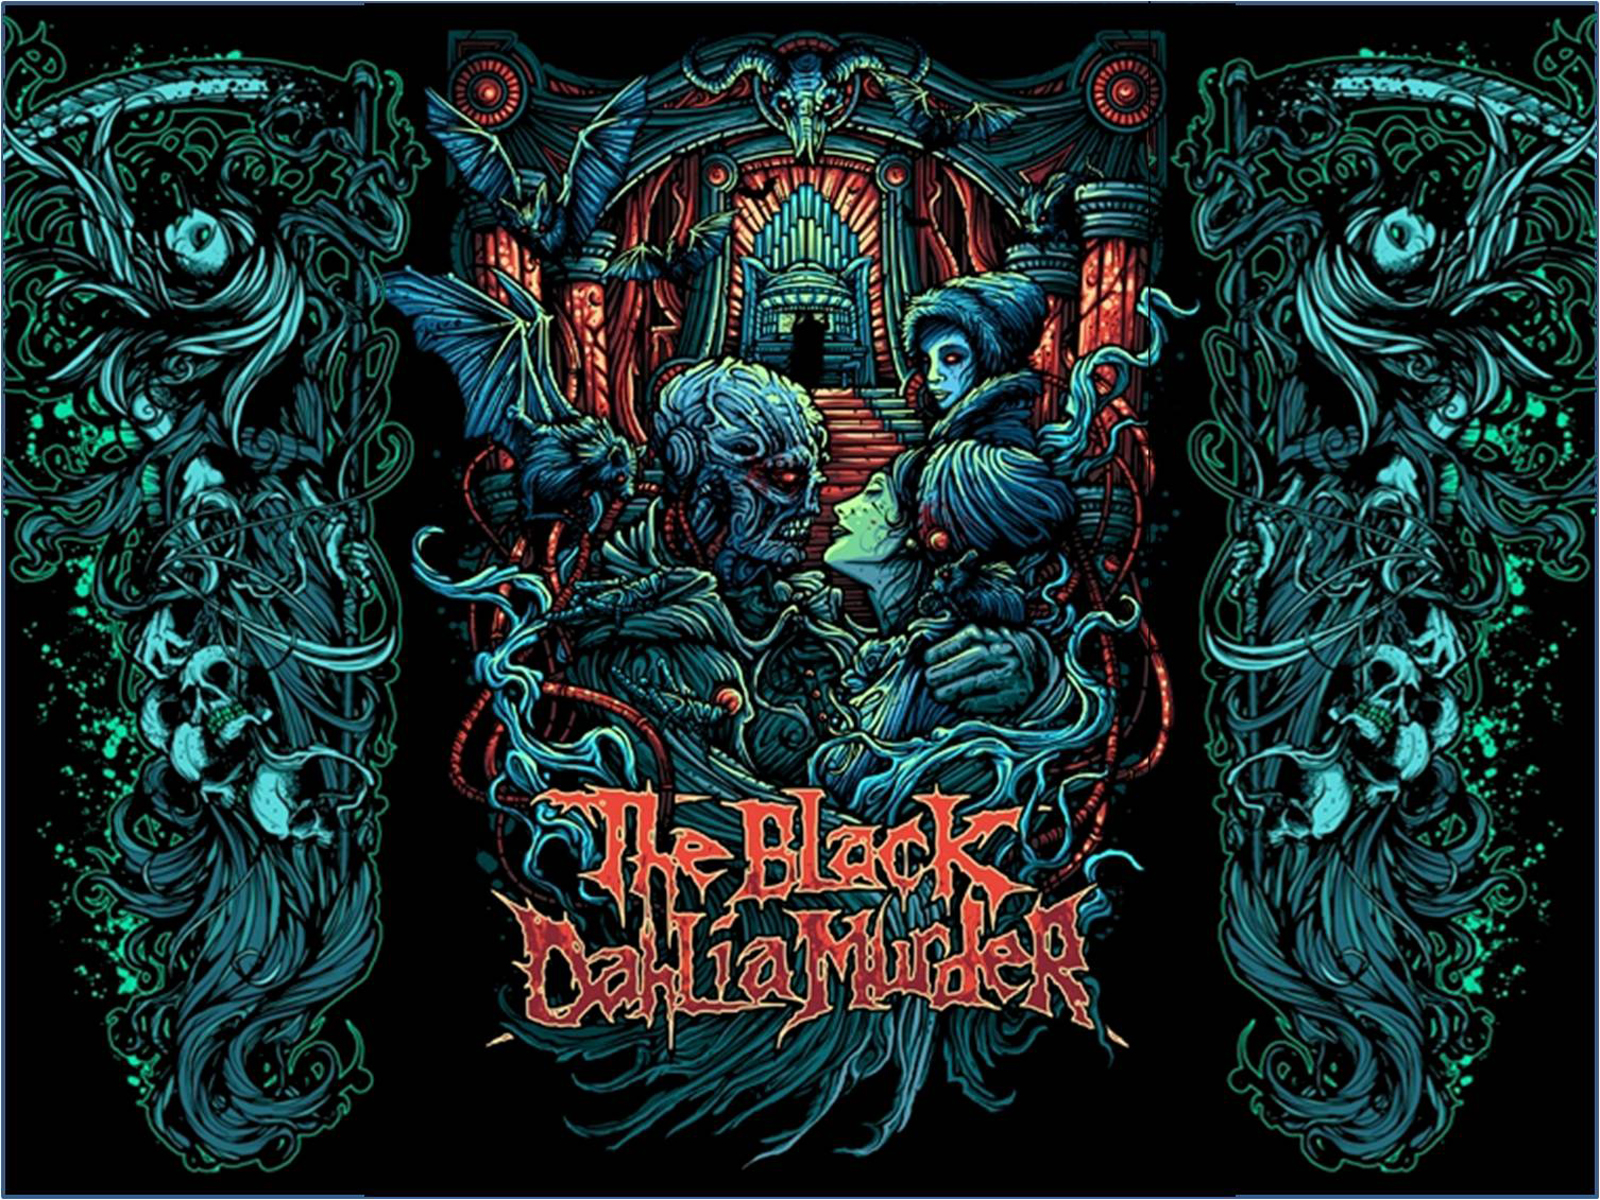 The Black Dahlia Murder #10